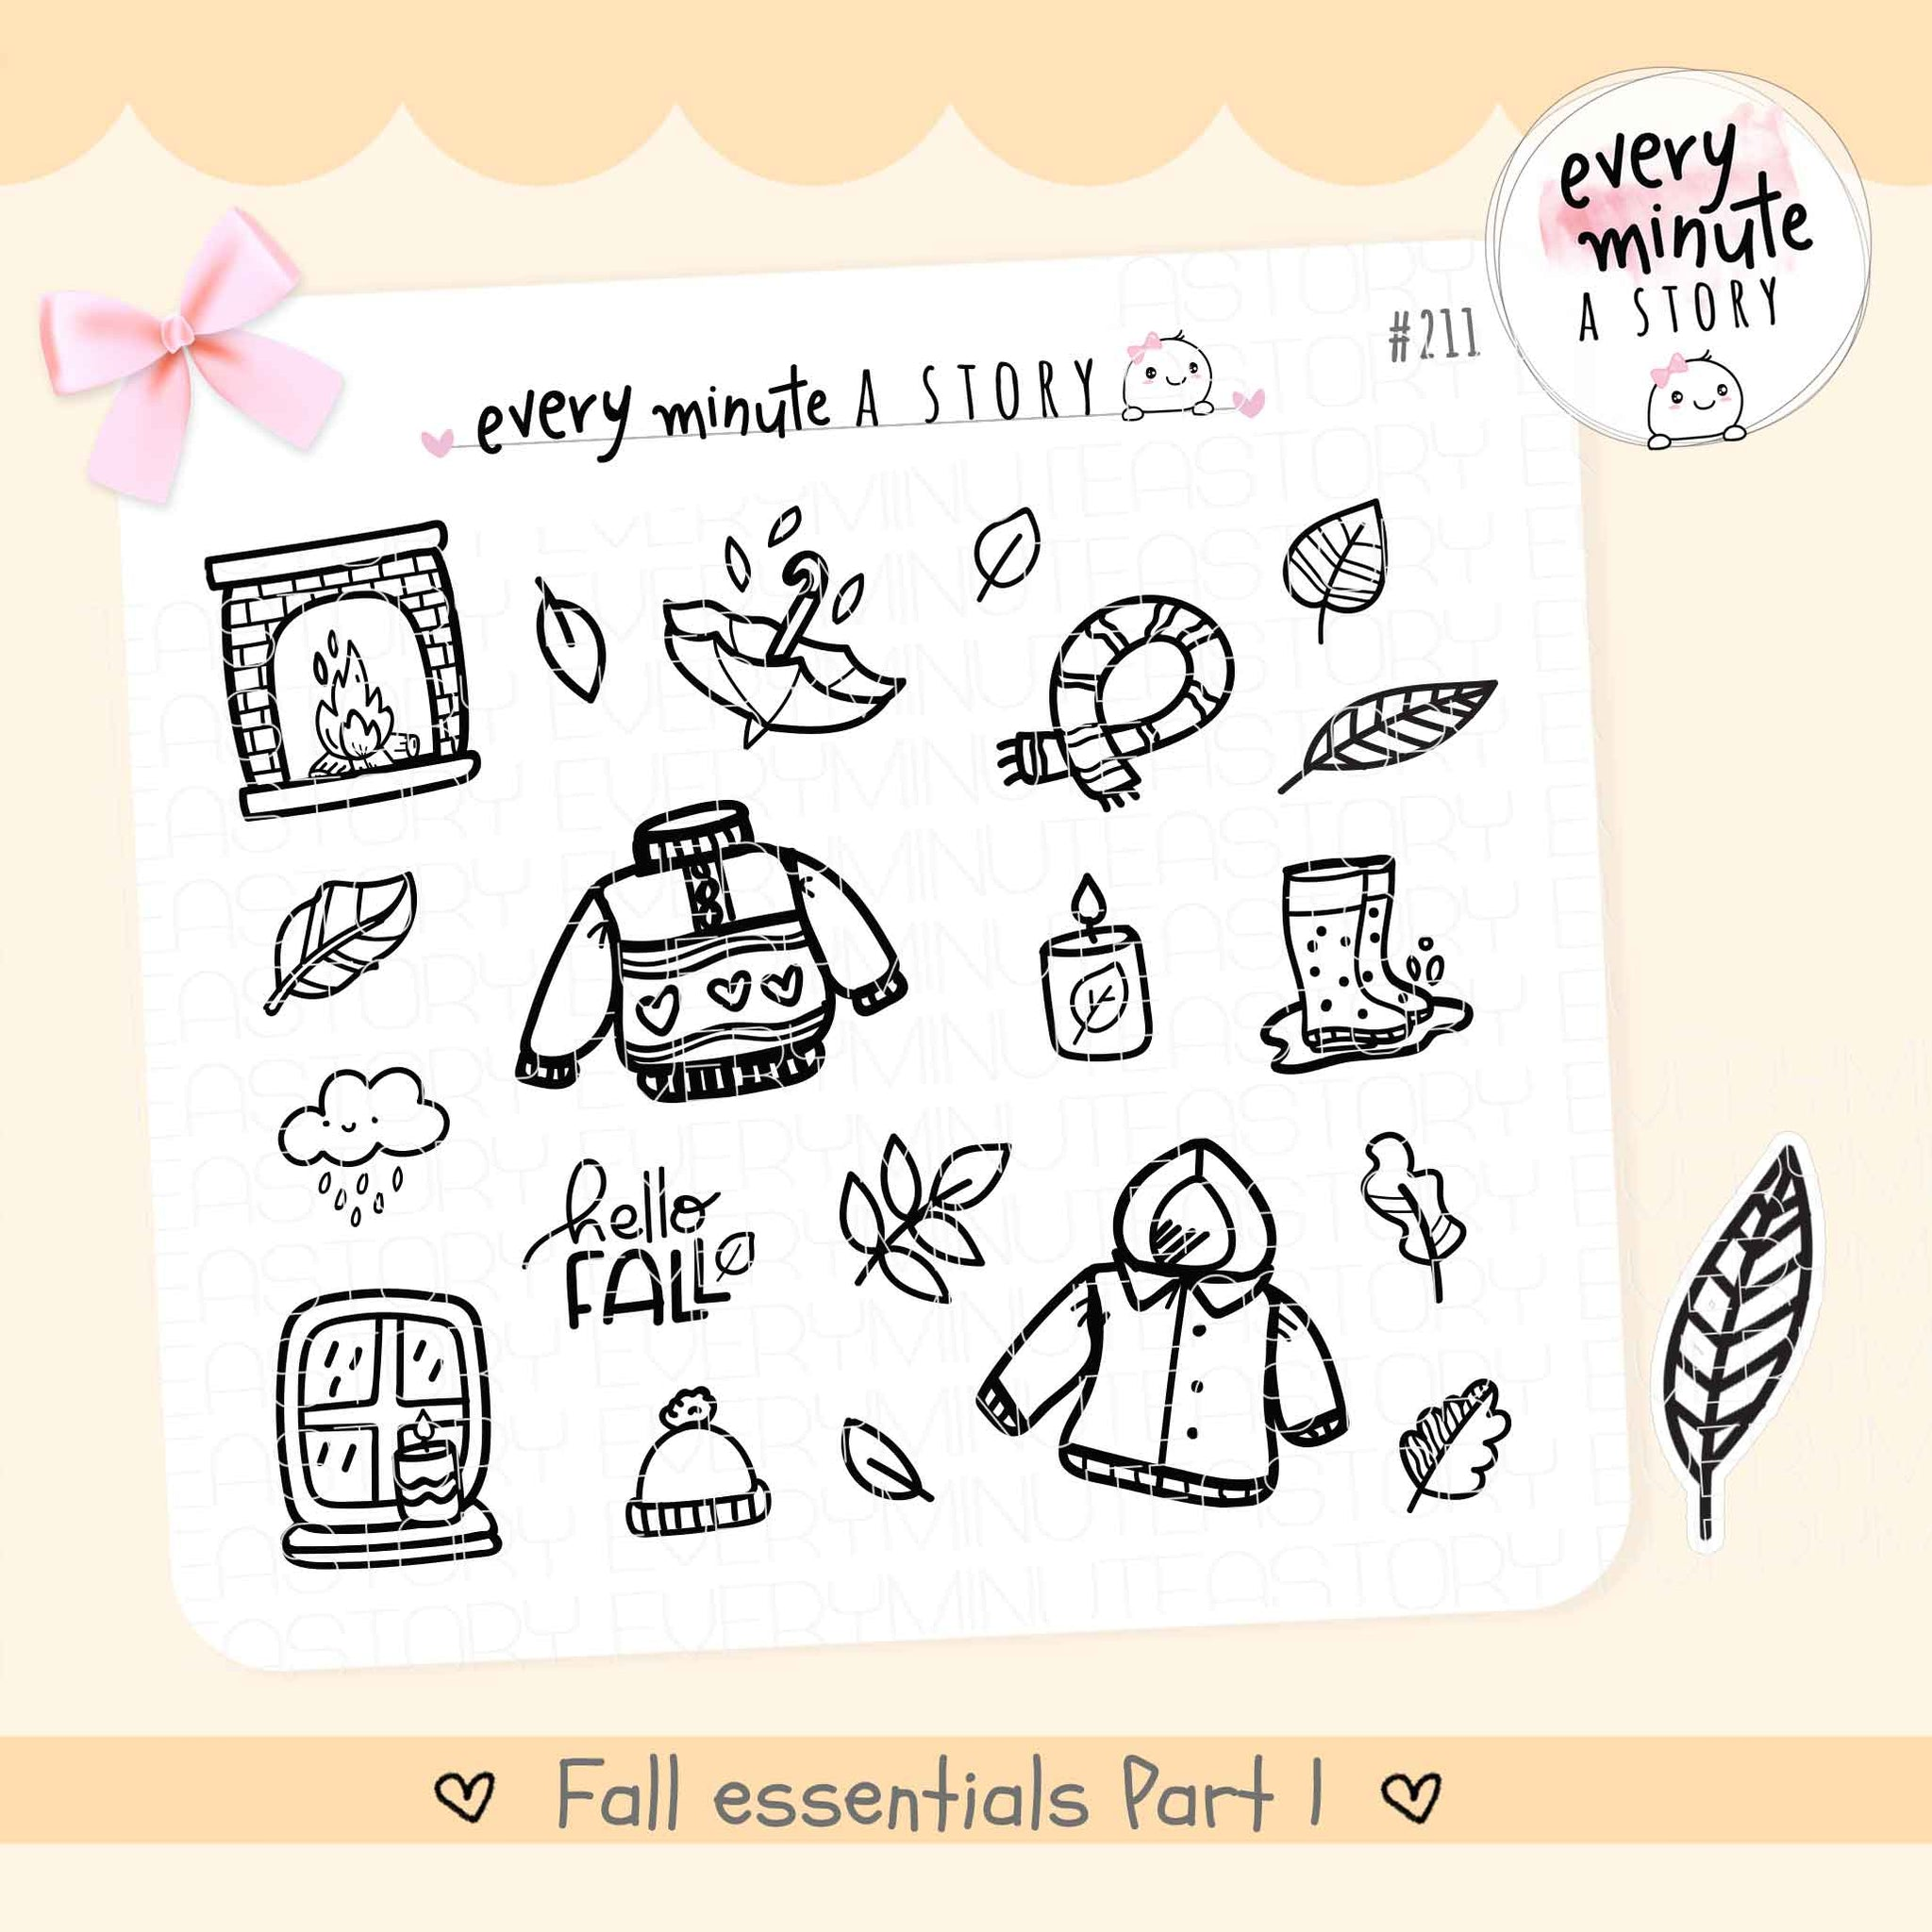 Fall Essentials doodle Planner Stickers Vol.1 - Every Minute A Story